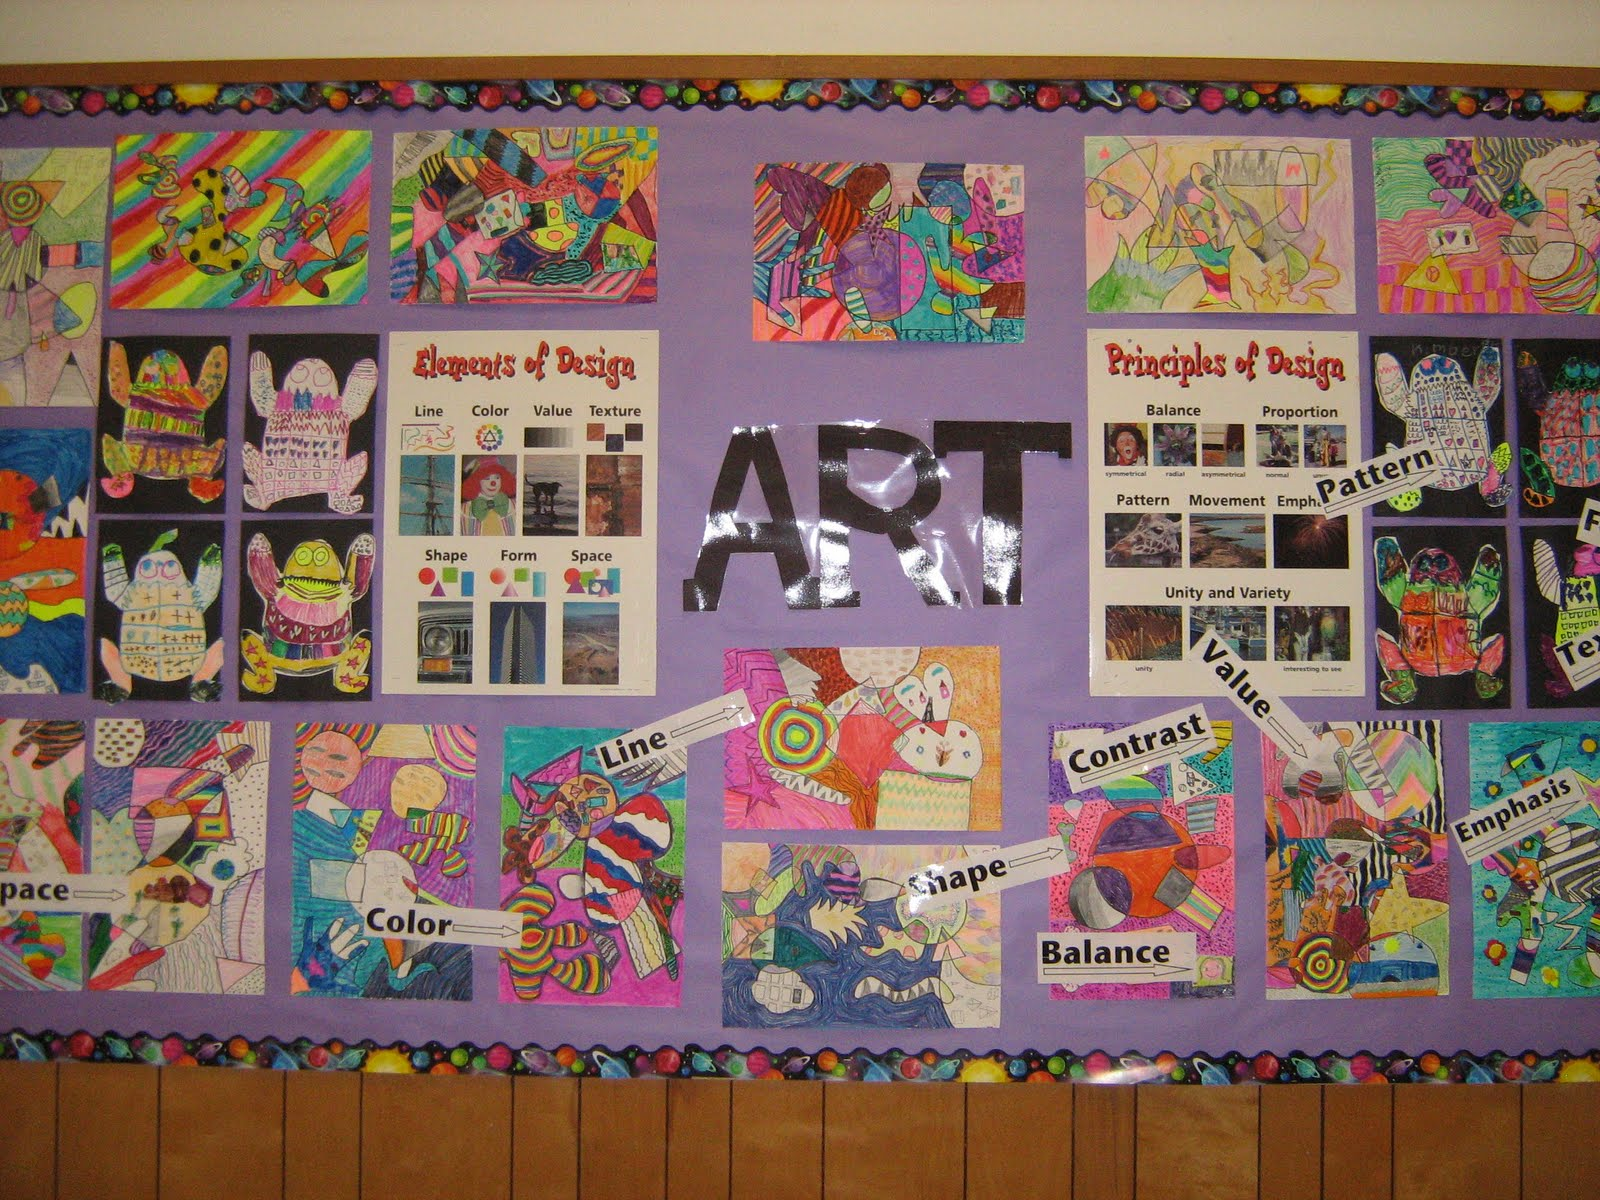 Principles Of Art Variety : Mrs. levine's elementary art blog: elements and principles of